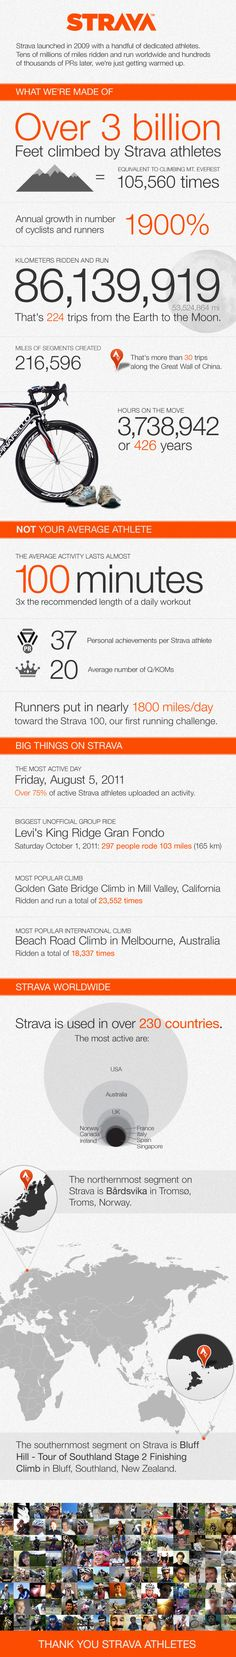 cool strava infographic ... older now, but still interesting stats